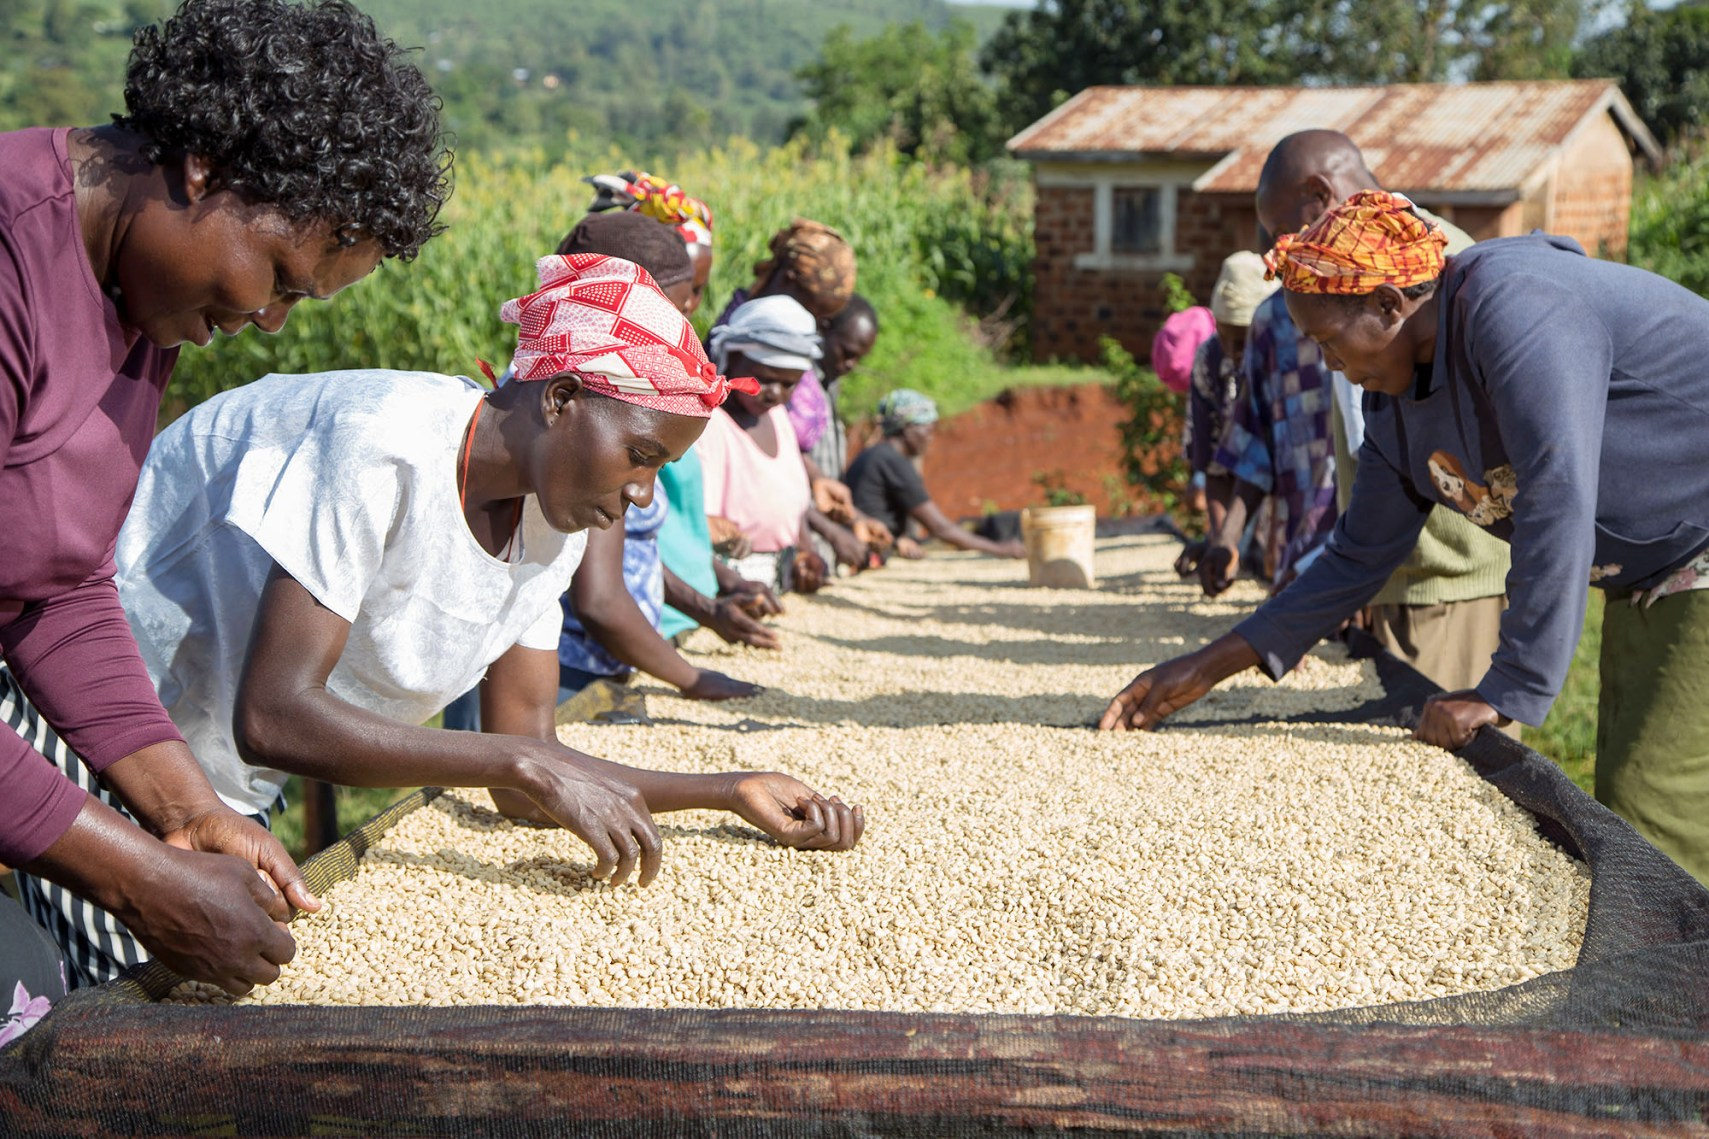 Cooperative members quality-sort coffee in Rachuonyo South, Kenya.